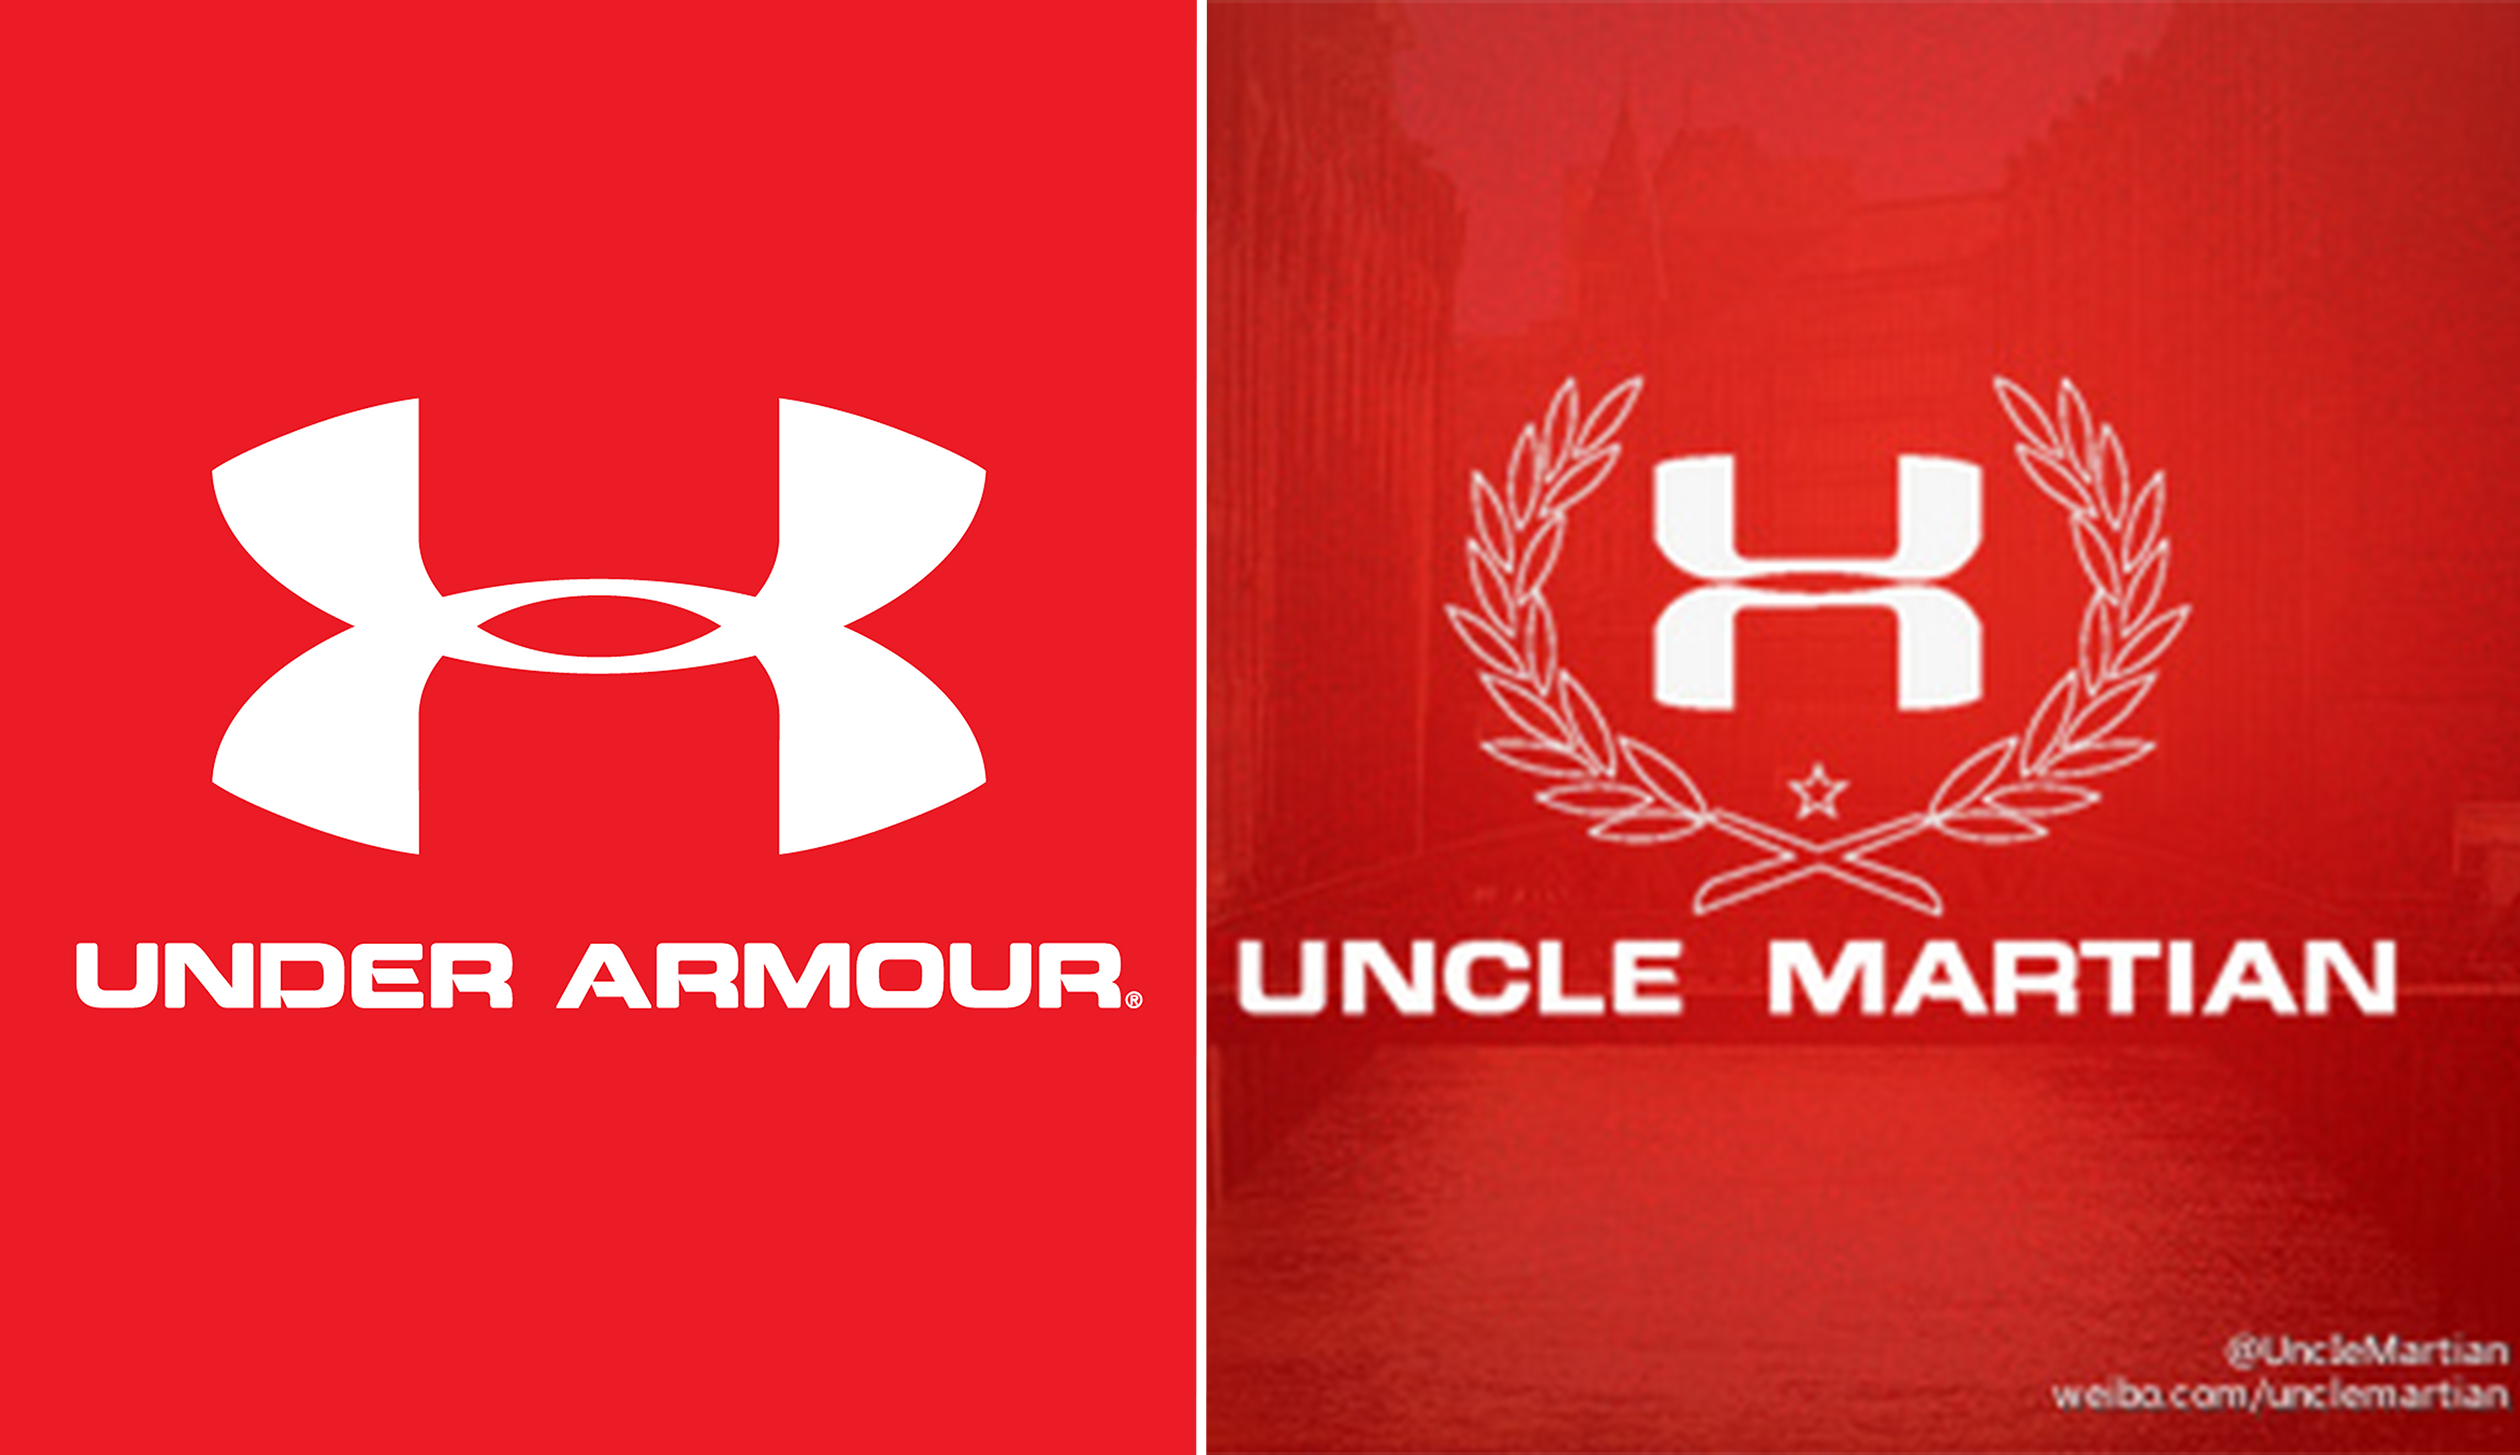 Under Armour's logo, left, appears next to China-based Uncle Martian's similar logo.